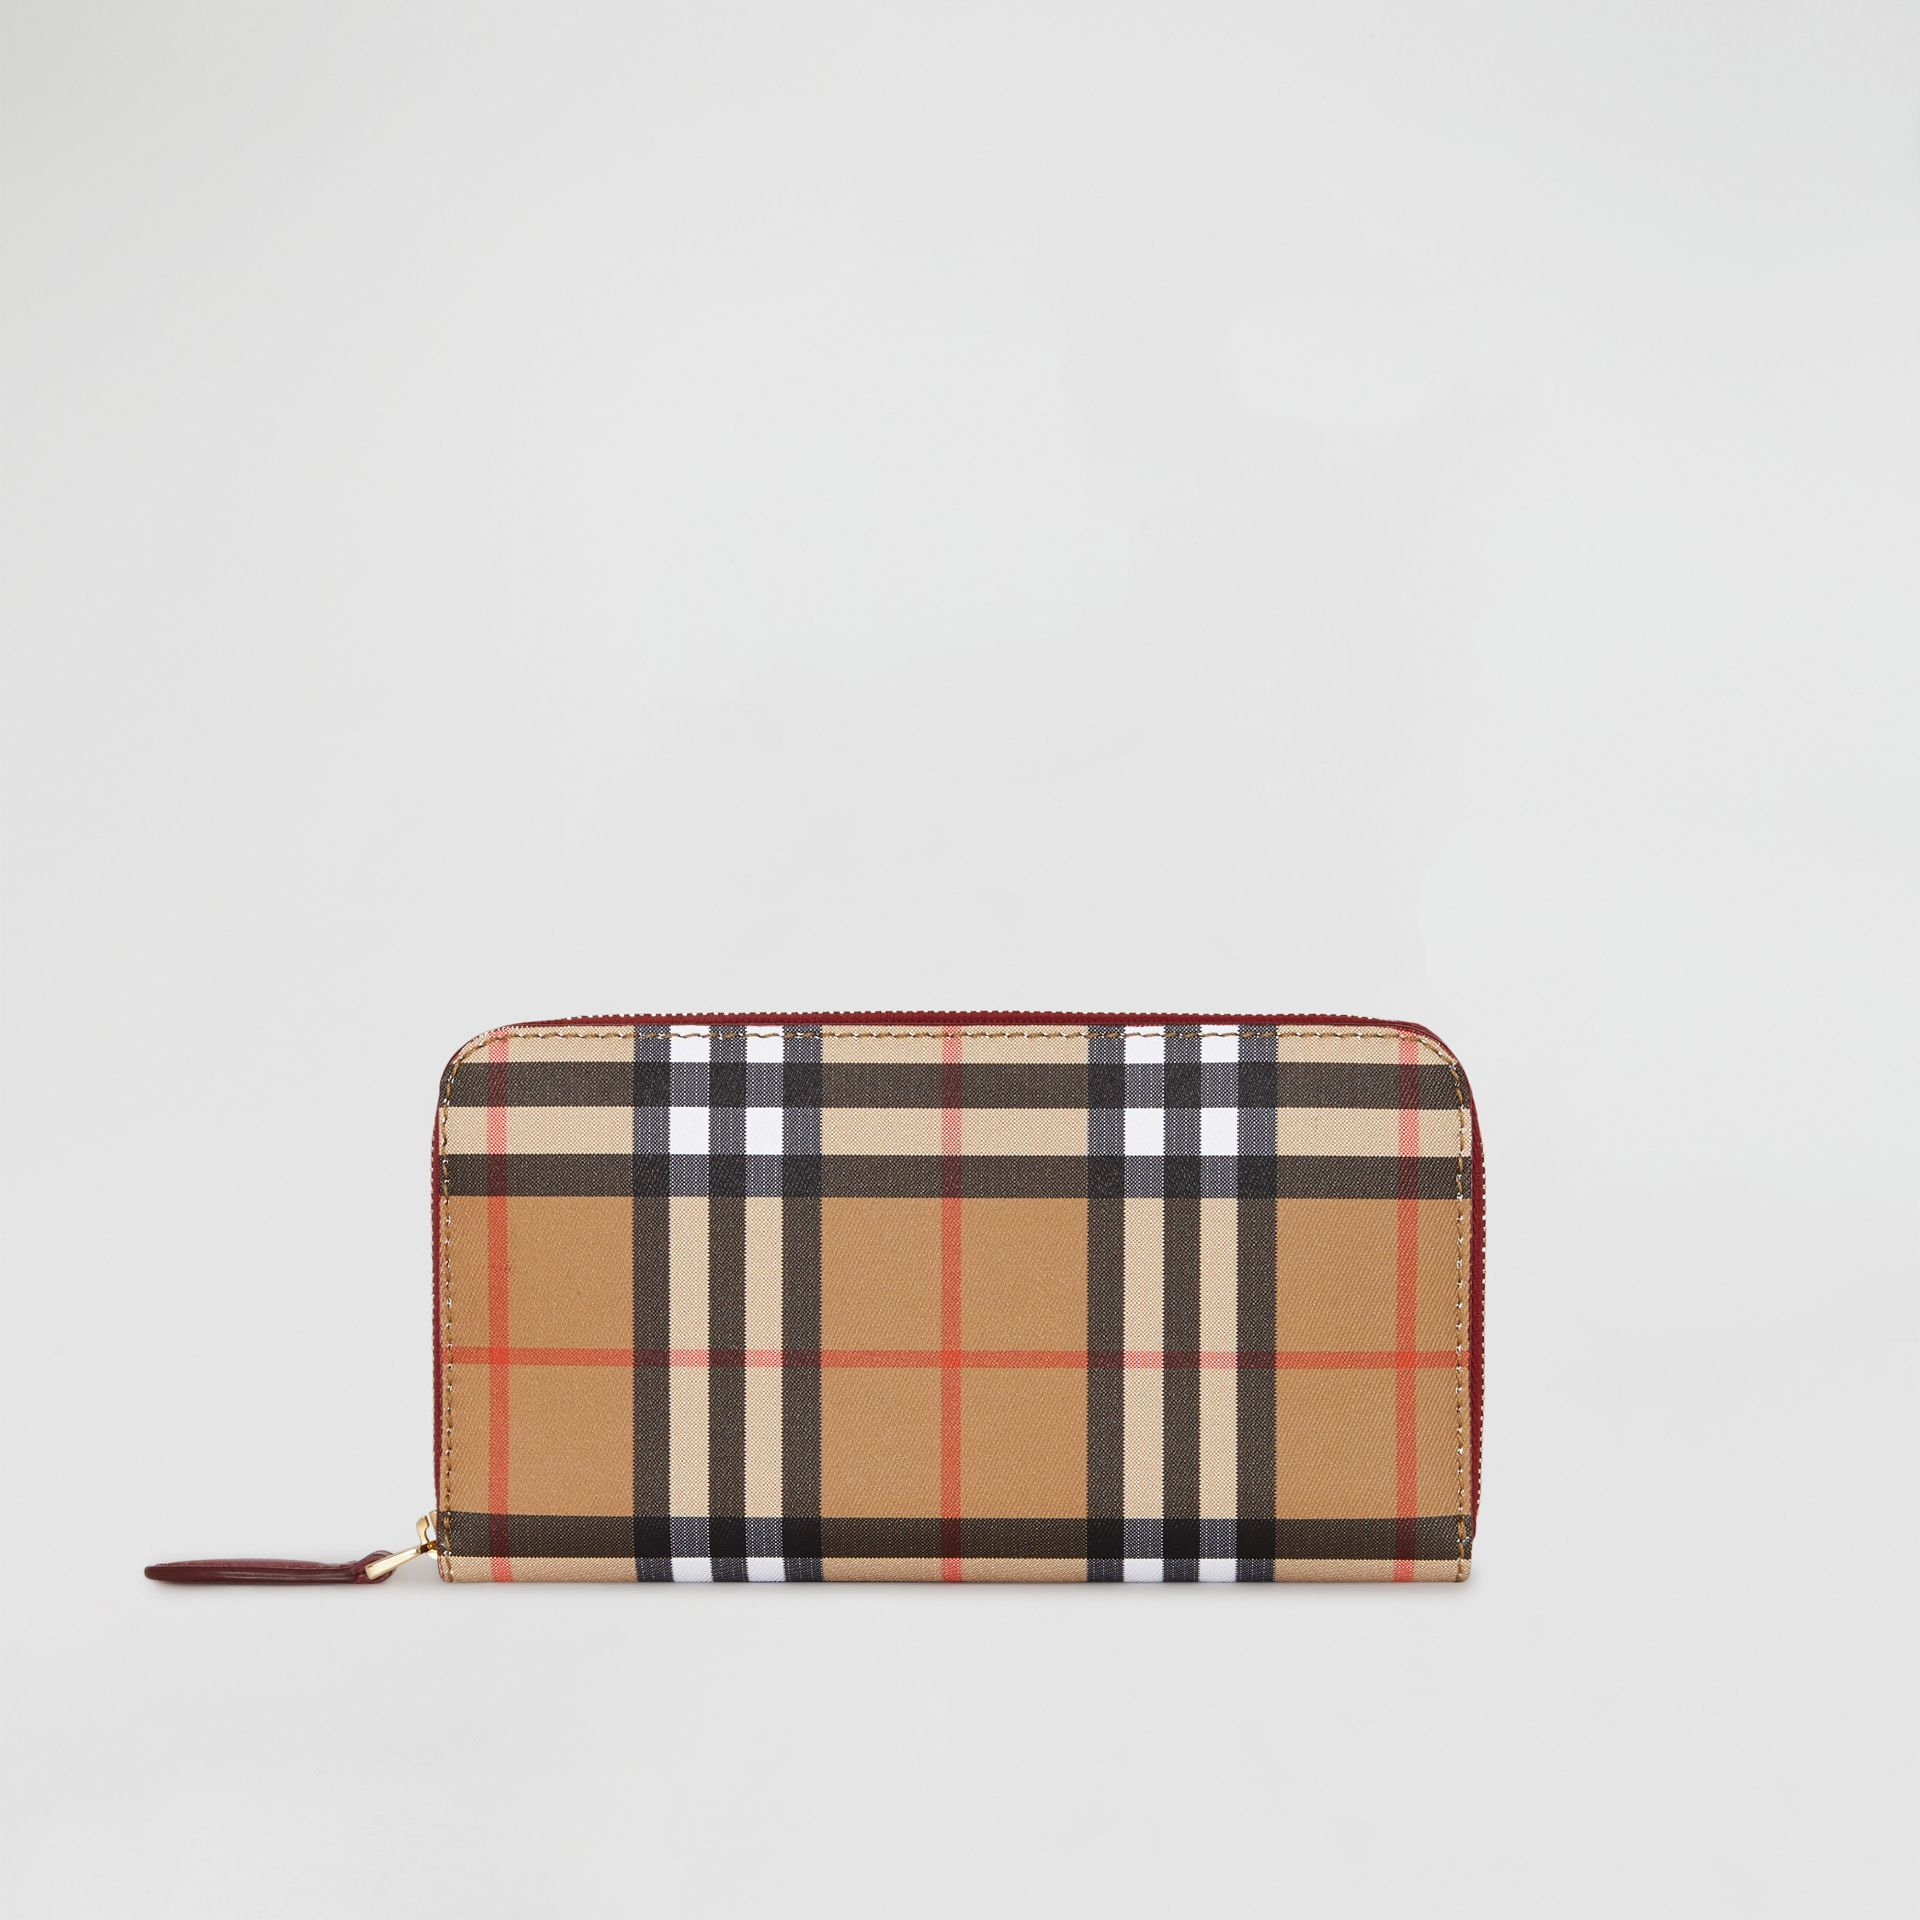 Vintage Check and Leather Ziparound Wallet in Crimson - Women | Burberry Hong Kong S.A.R - gallery image 2